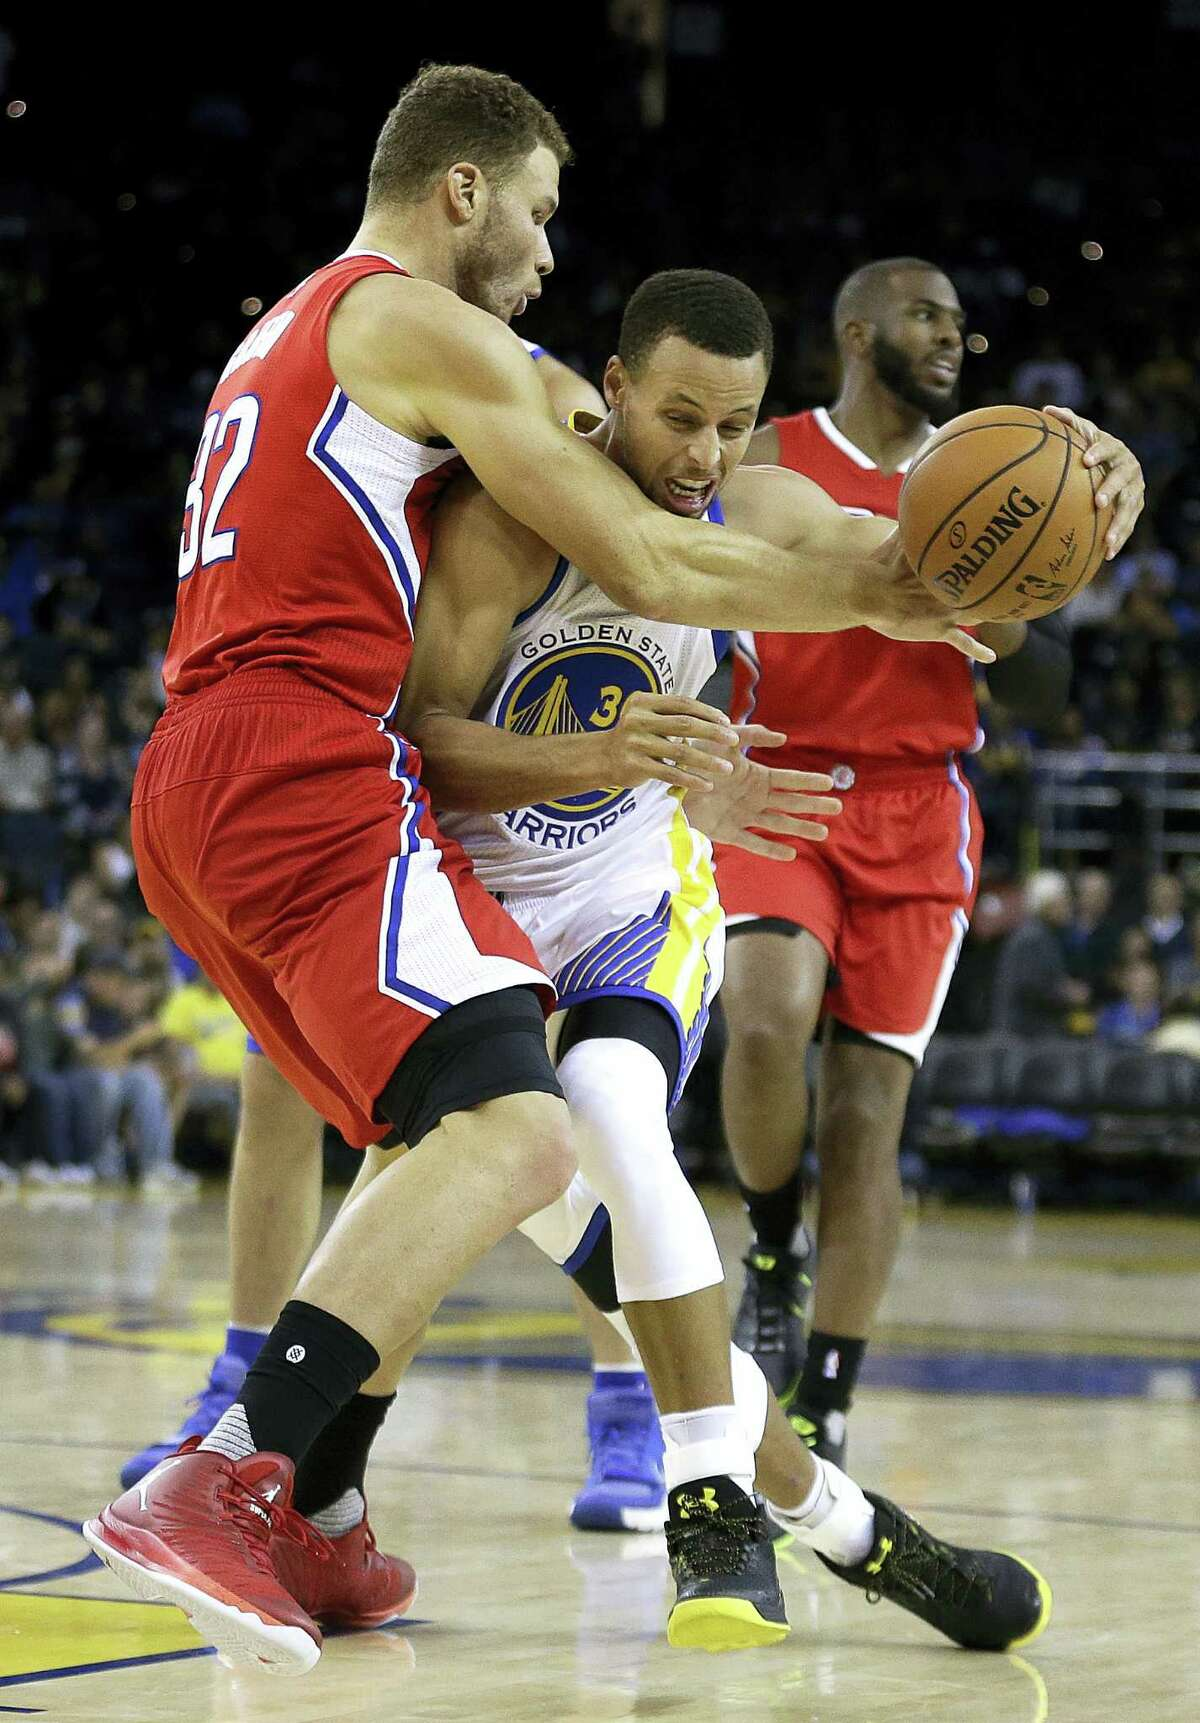 Los Angeles Clippers' Blake Griffin, left, guards Golden State Warriors' Stephen Curry during the third quarter of a pre-season NBA basketball game on Oct. 4, 2016, in Oakland, Calif.